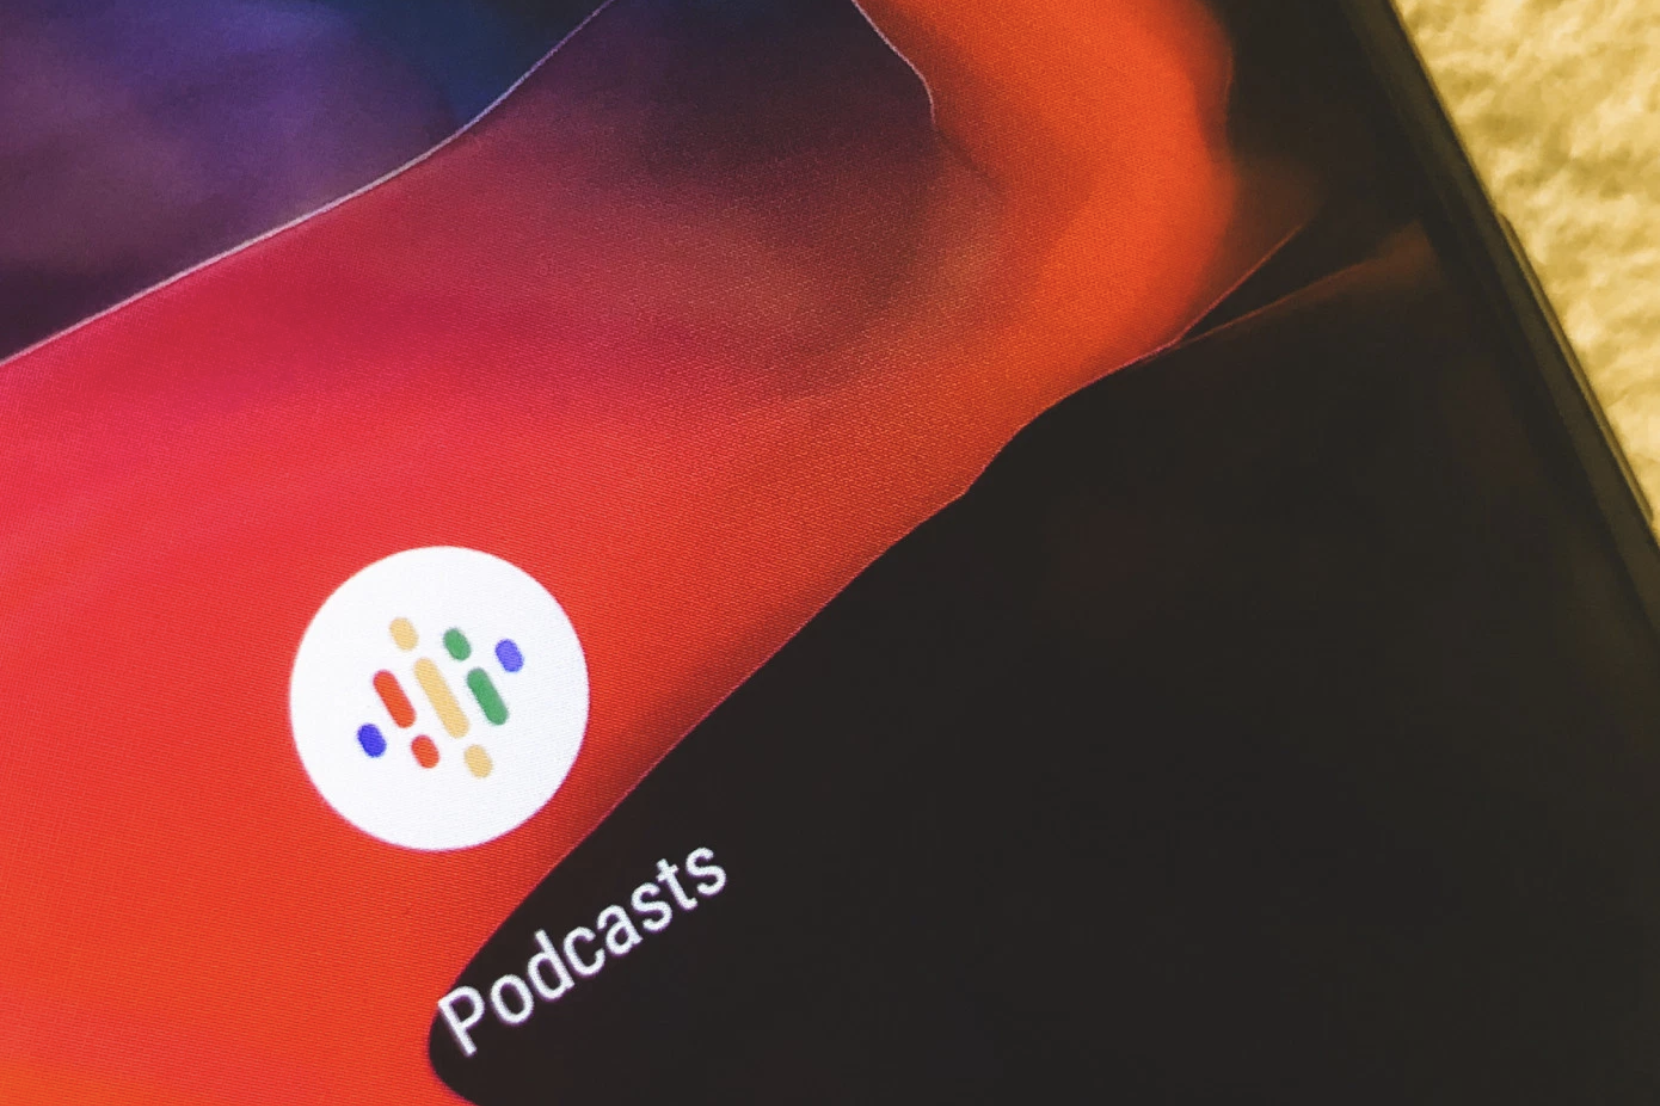 Tech Crunch - GOOGLE LAUNCHES ACCELERATOR TO INCREASE DIVERSITY IN PODCASTINGOCT 4, 2018